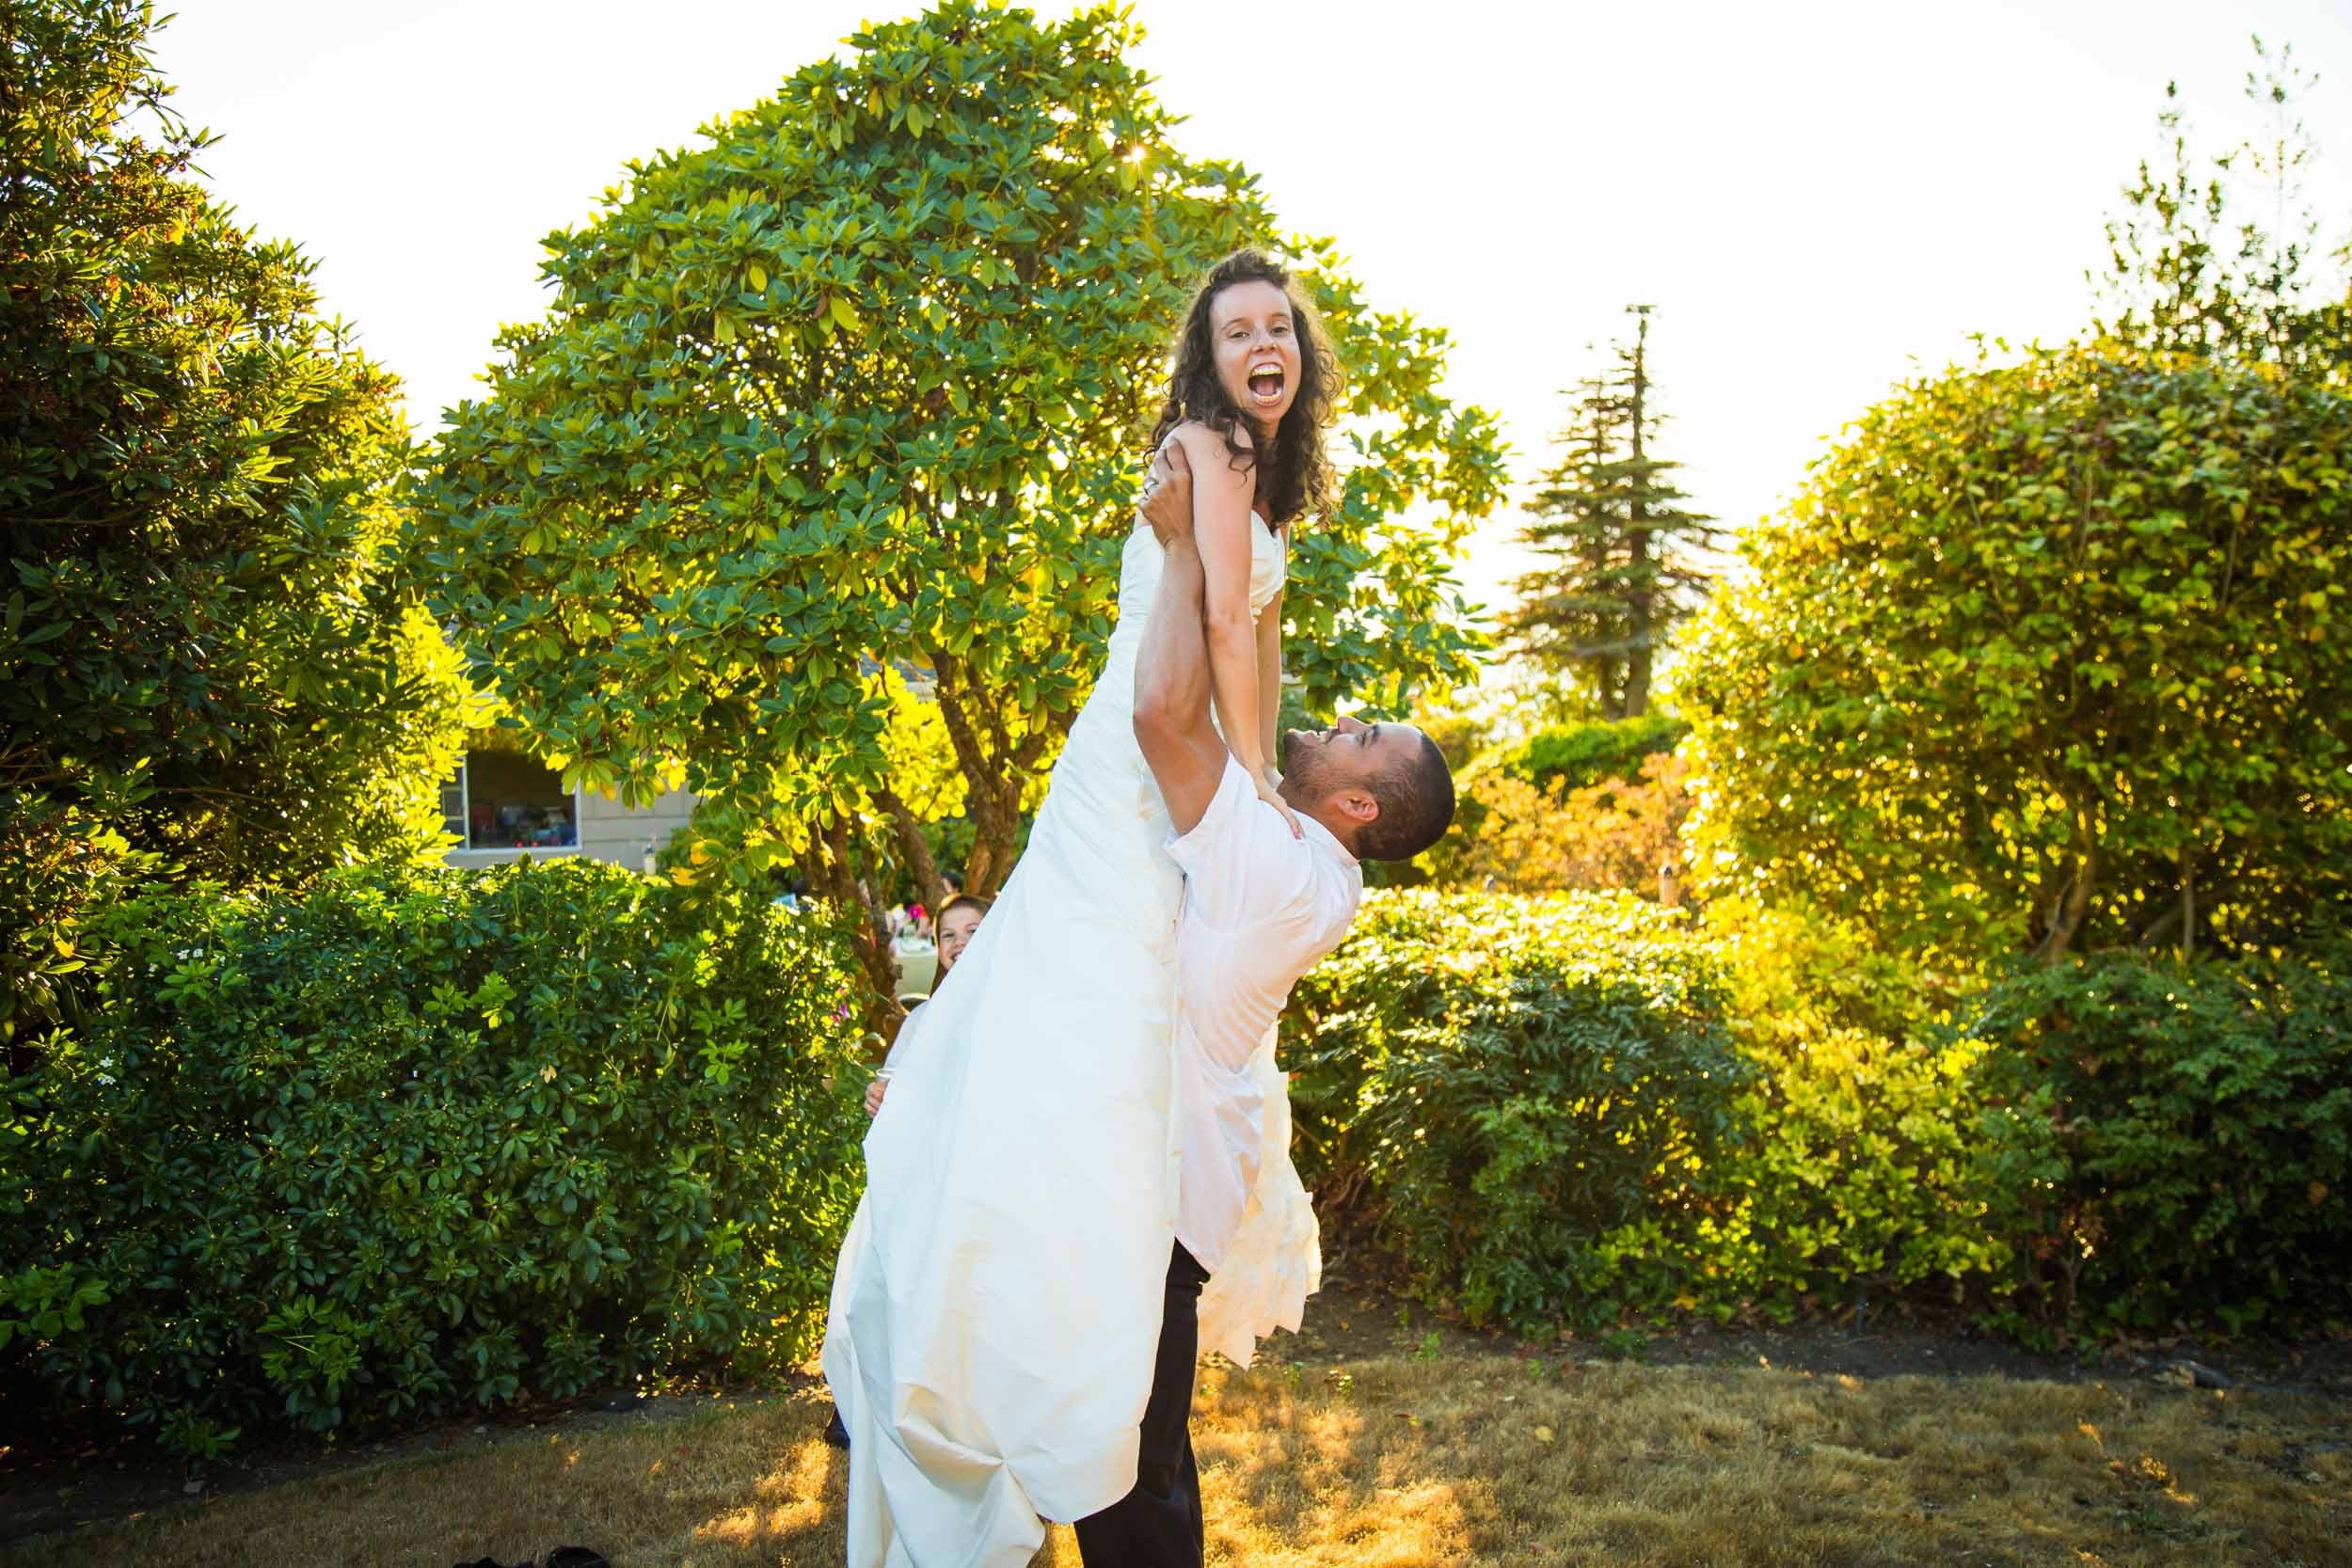 Bride and groom portrait for summer wedding   Durham Wedding Photographer   By G. Lin Photography